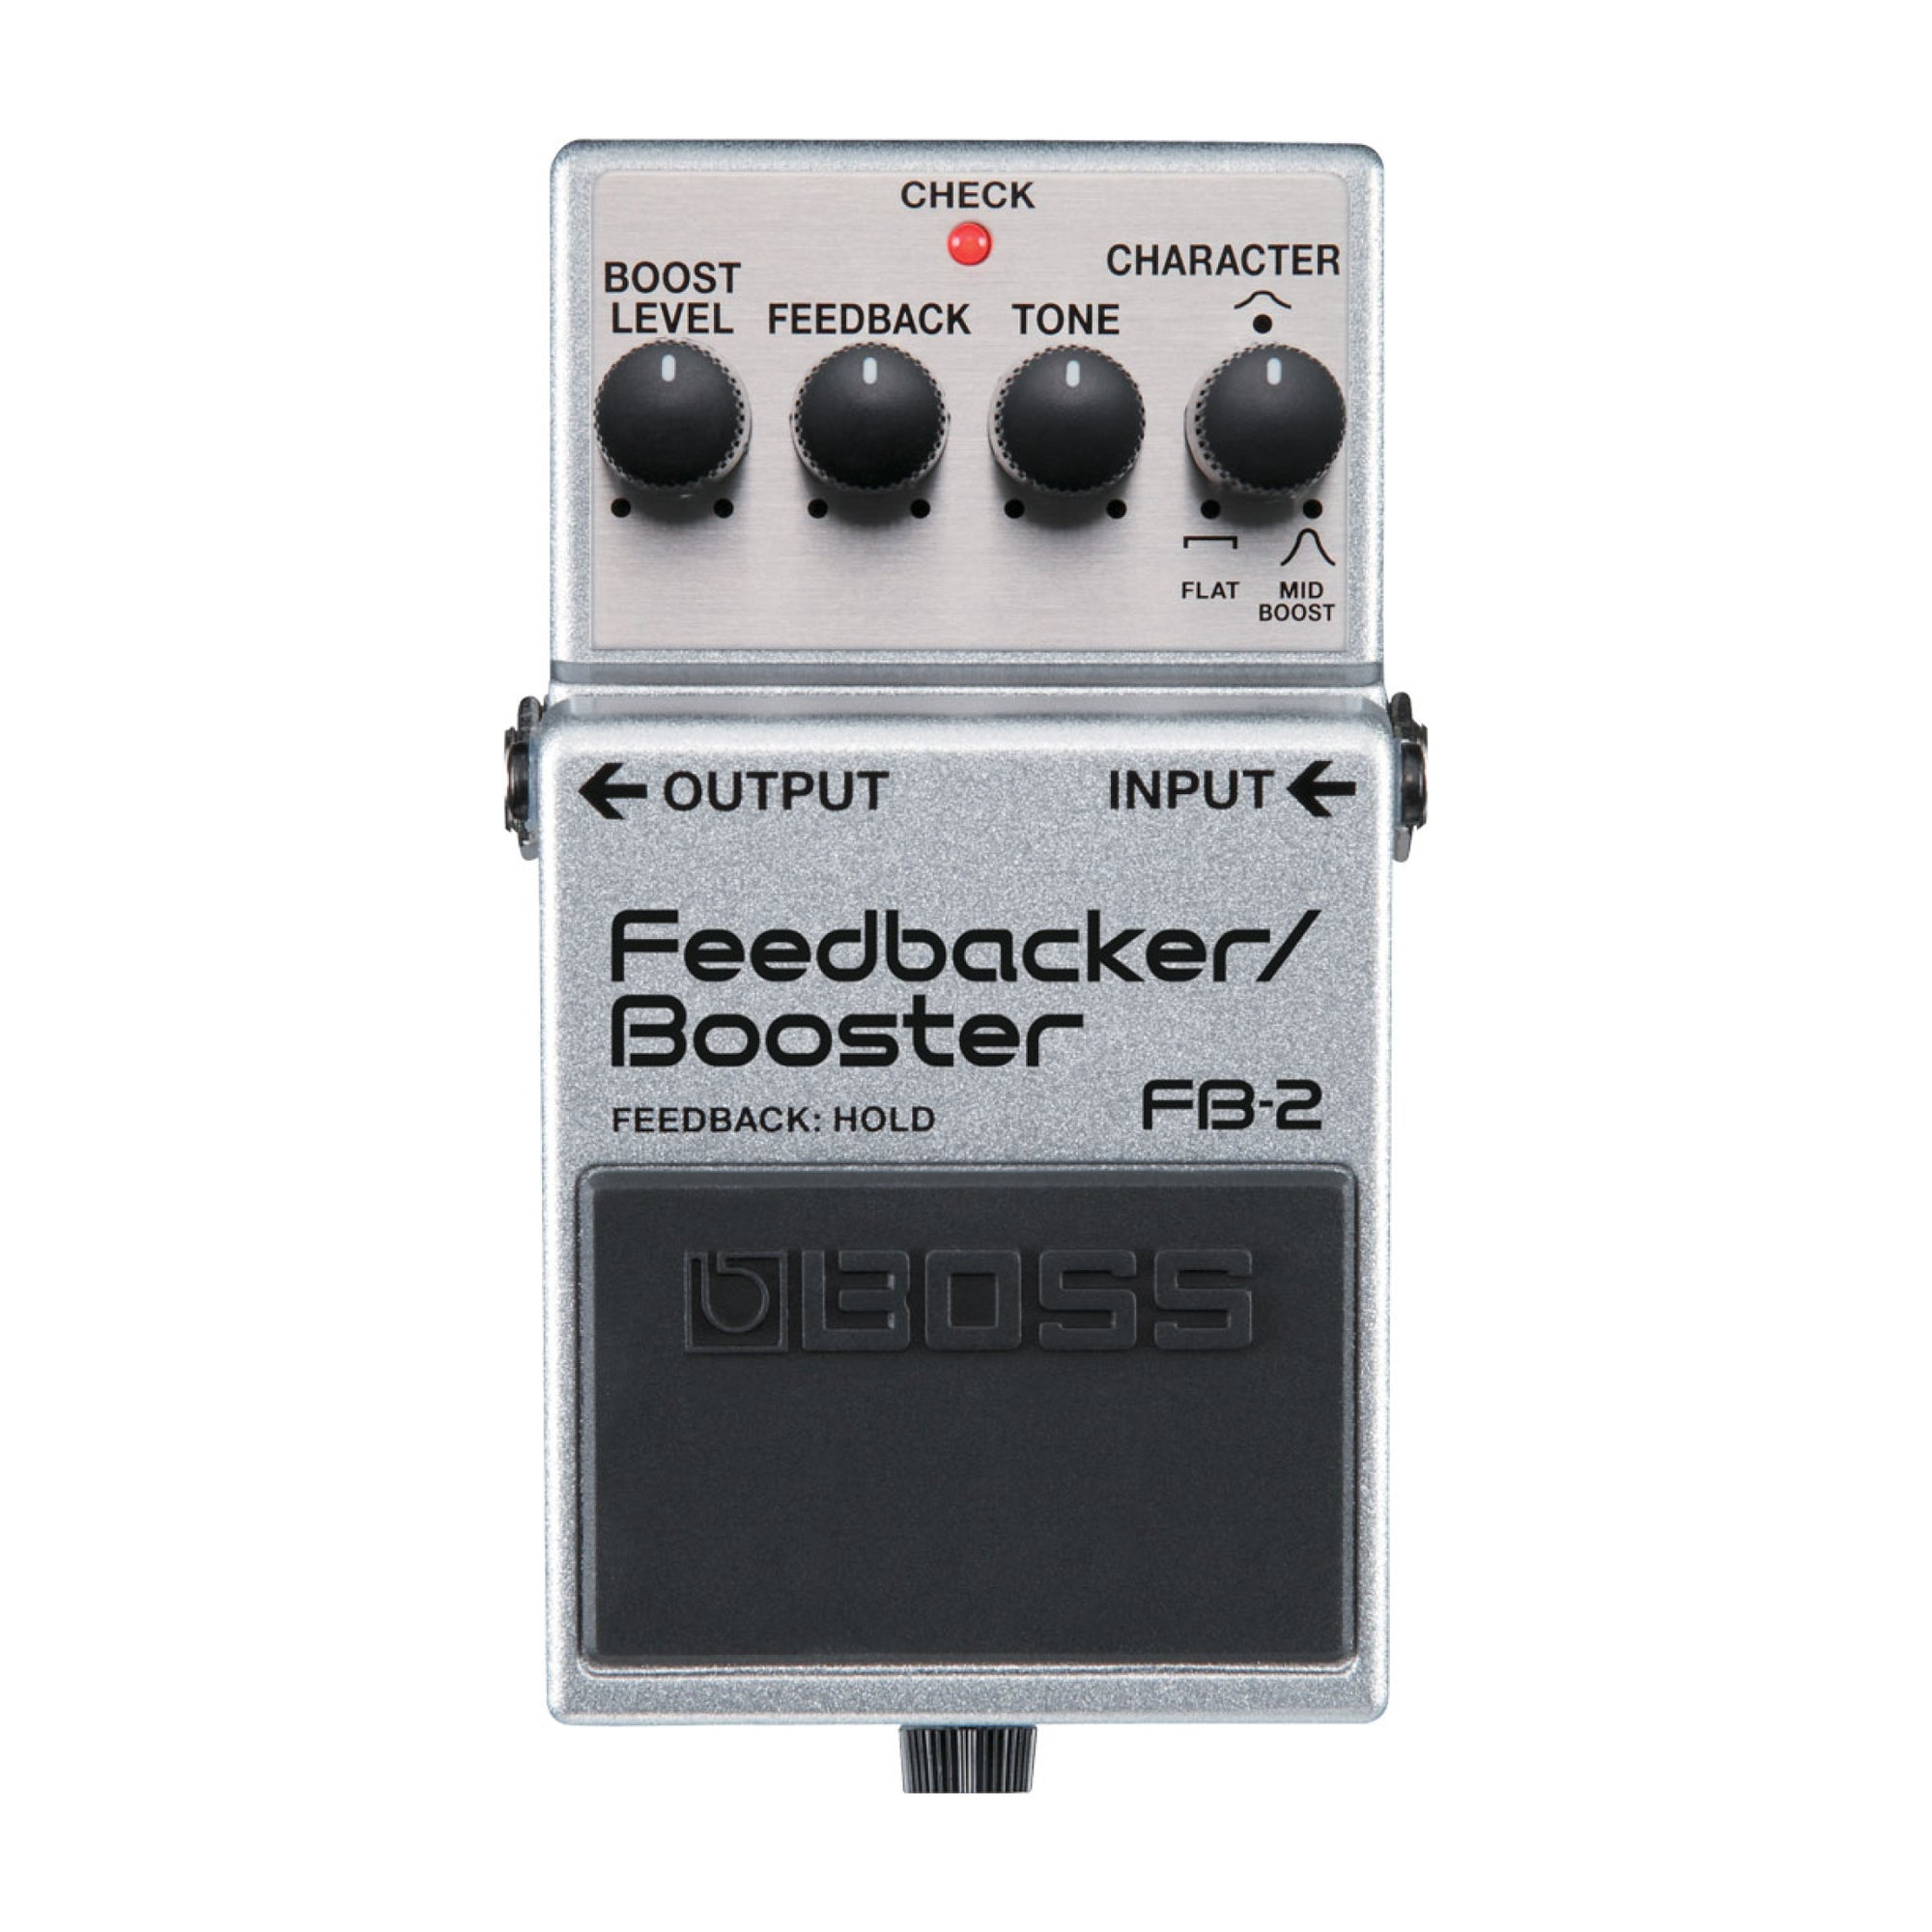 BOSS FB-2 Feedbacker/Booster - Tarpley Music Company, Inc.